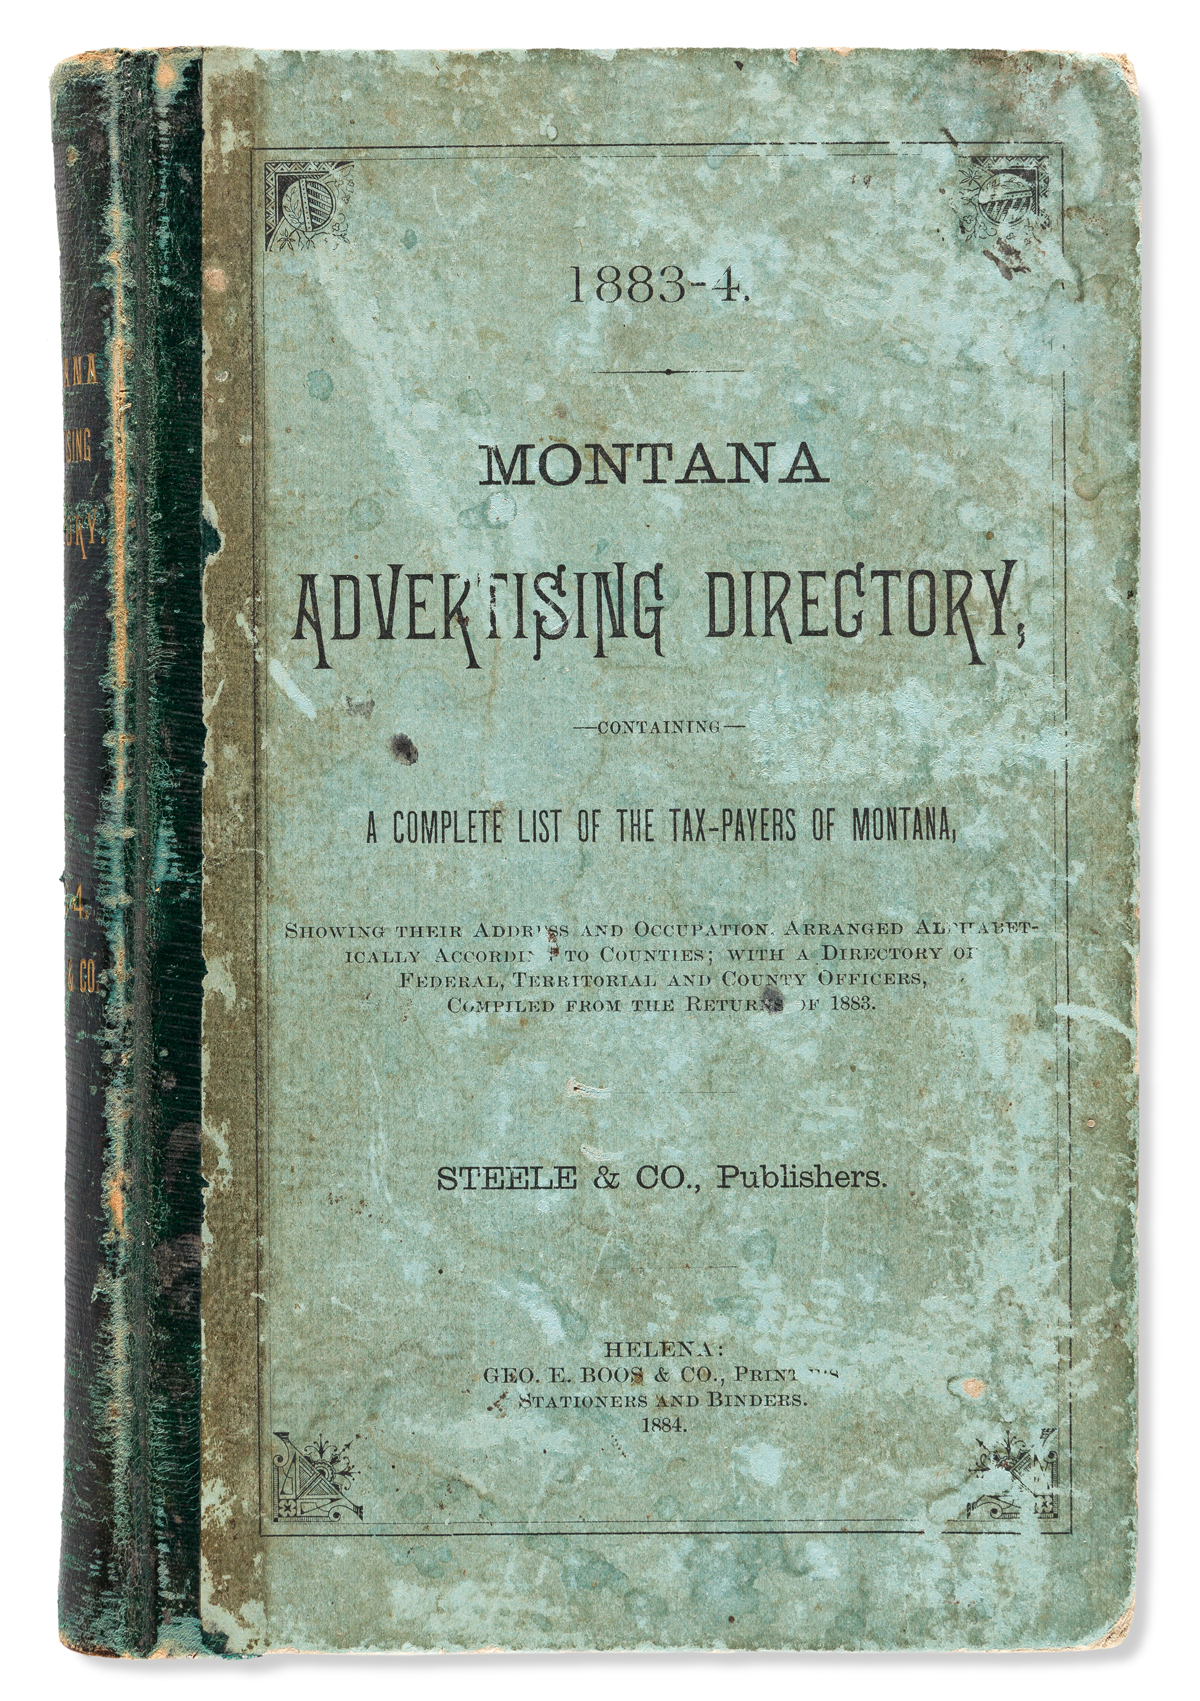 (WEST--MONTANA.) 1883-4 Montana Advertising Directory, Containing a Complete List of the Tax-Payers of Montana.